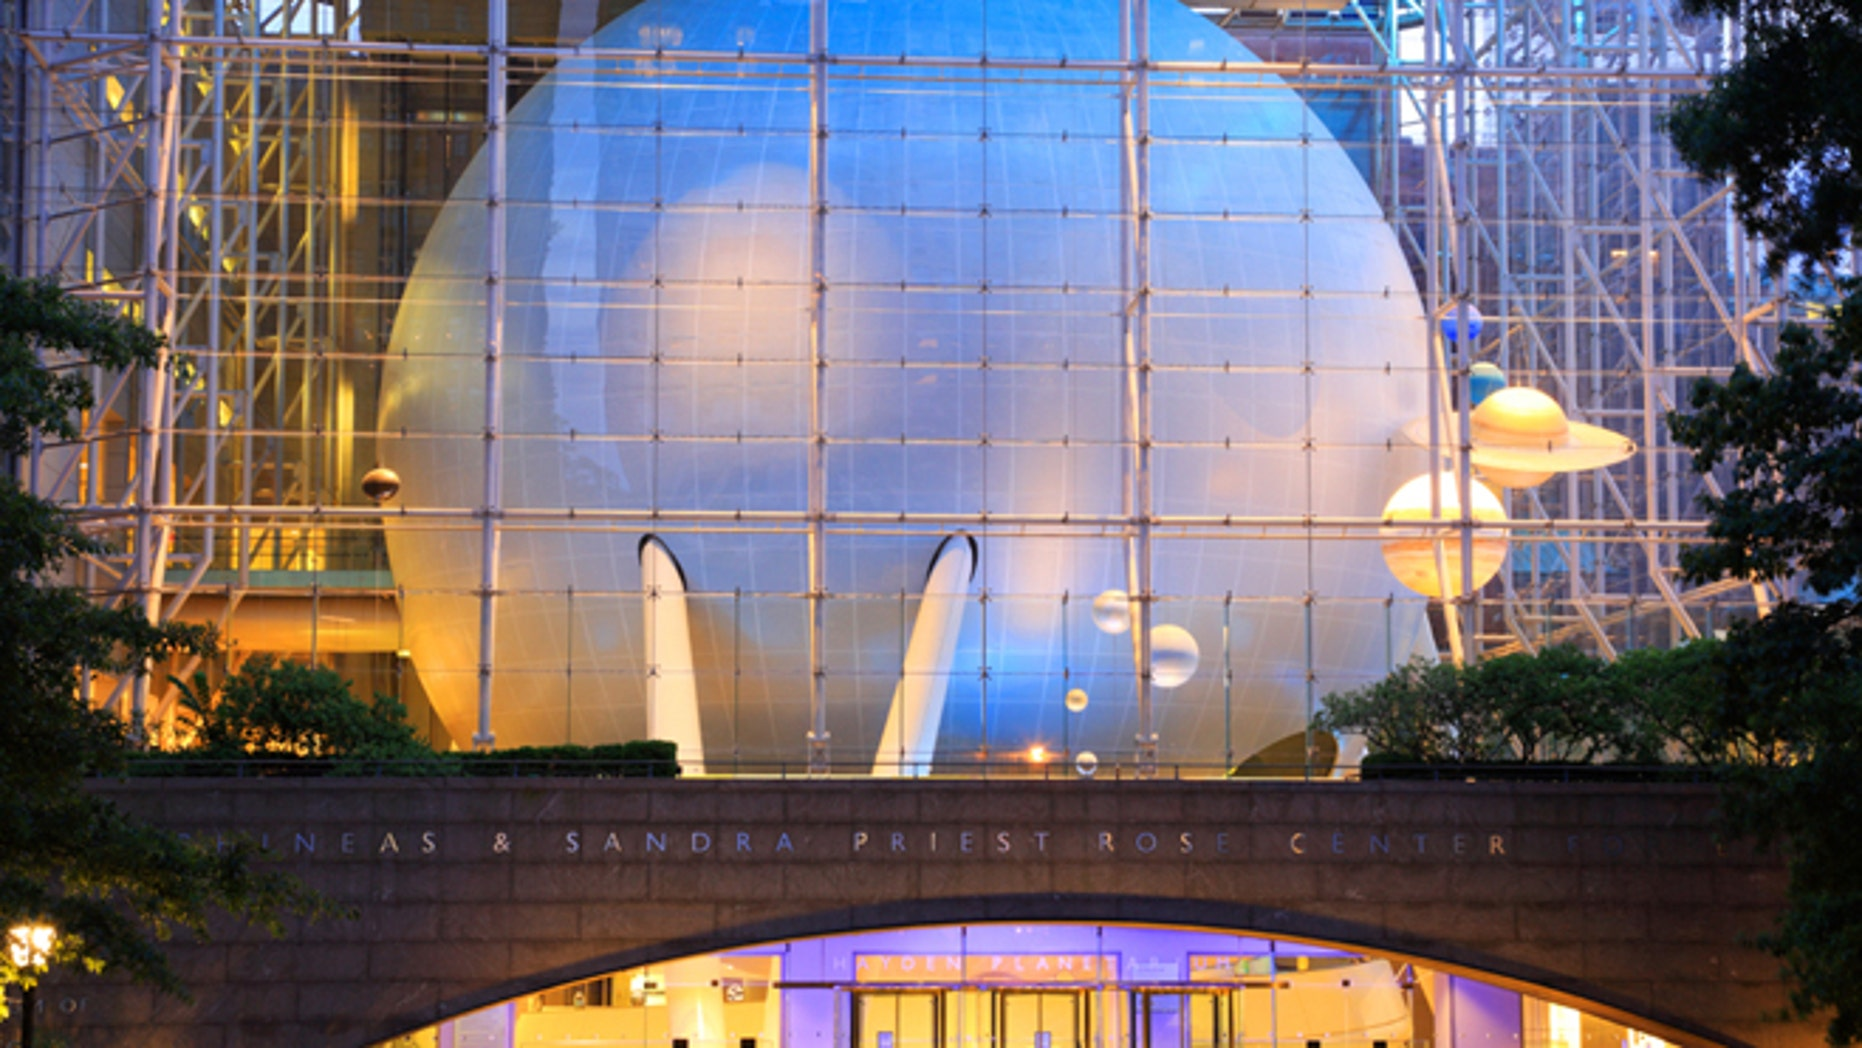 The Rose Center for Earth and Space at the American Museum of Natural History in New York